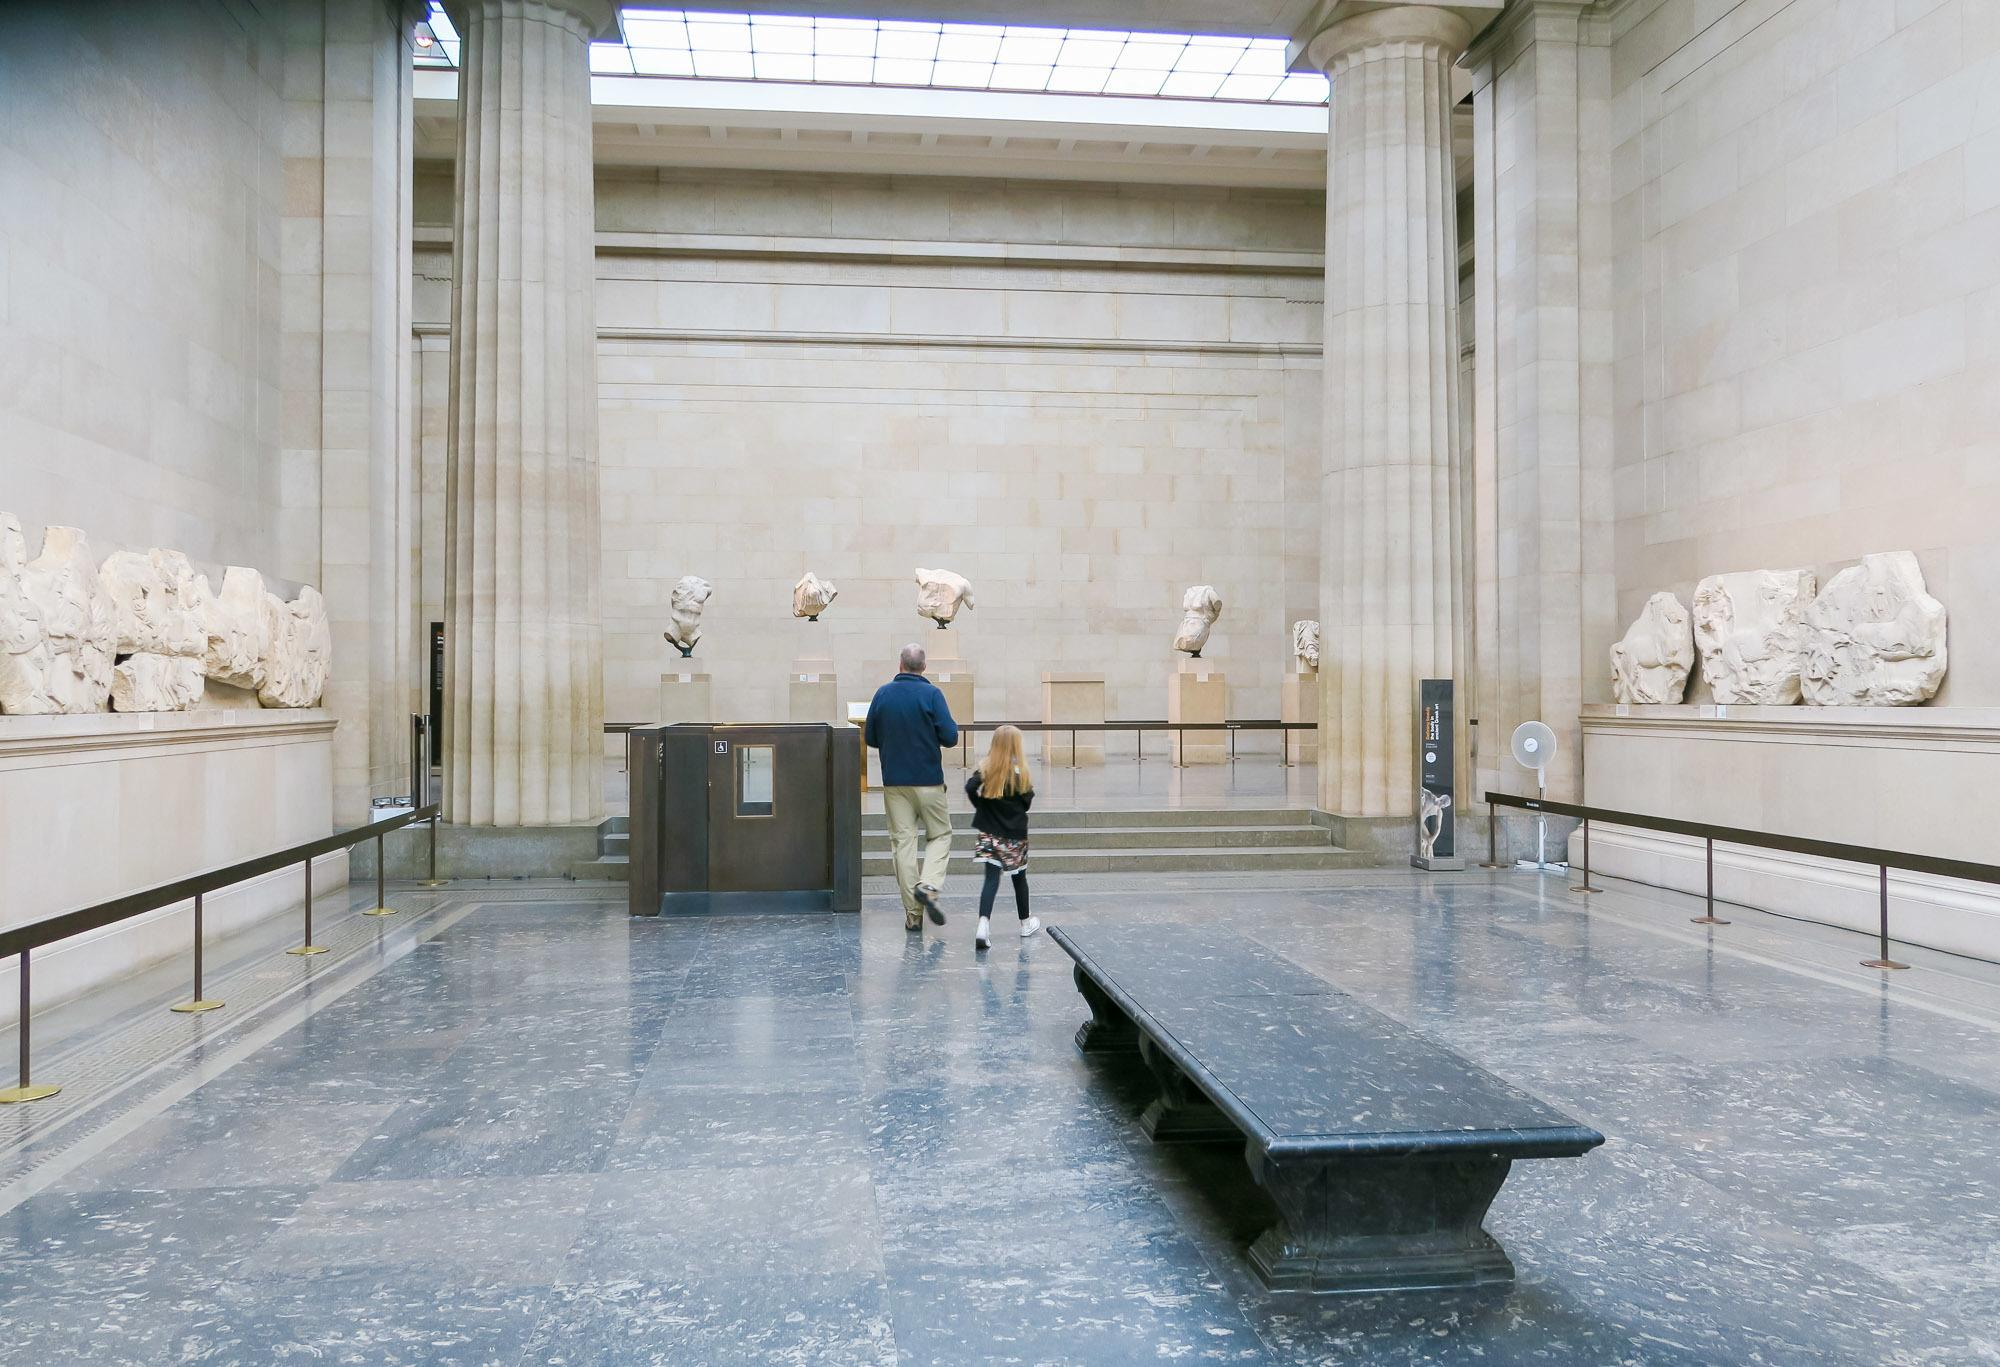 The Parthenon Sculptures (Elgin Marbles) is an exhibit you must see at the British Museum in London.